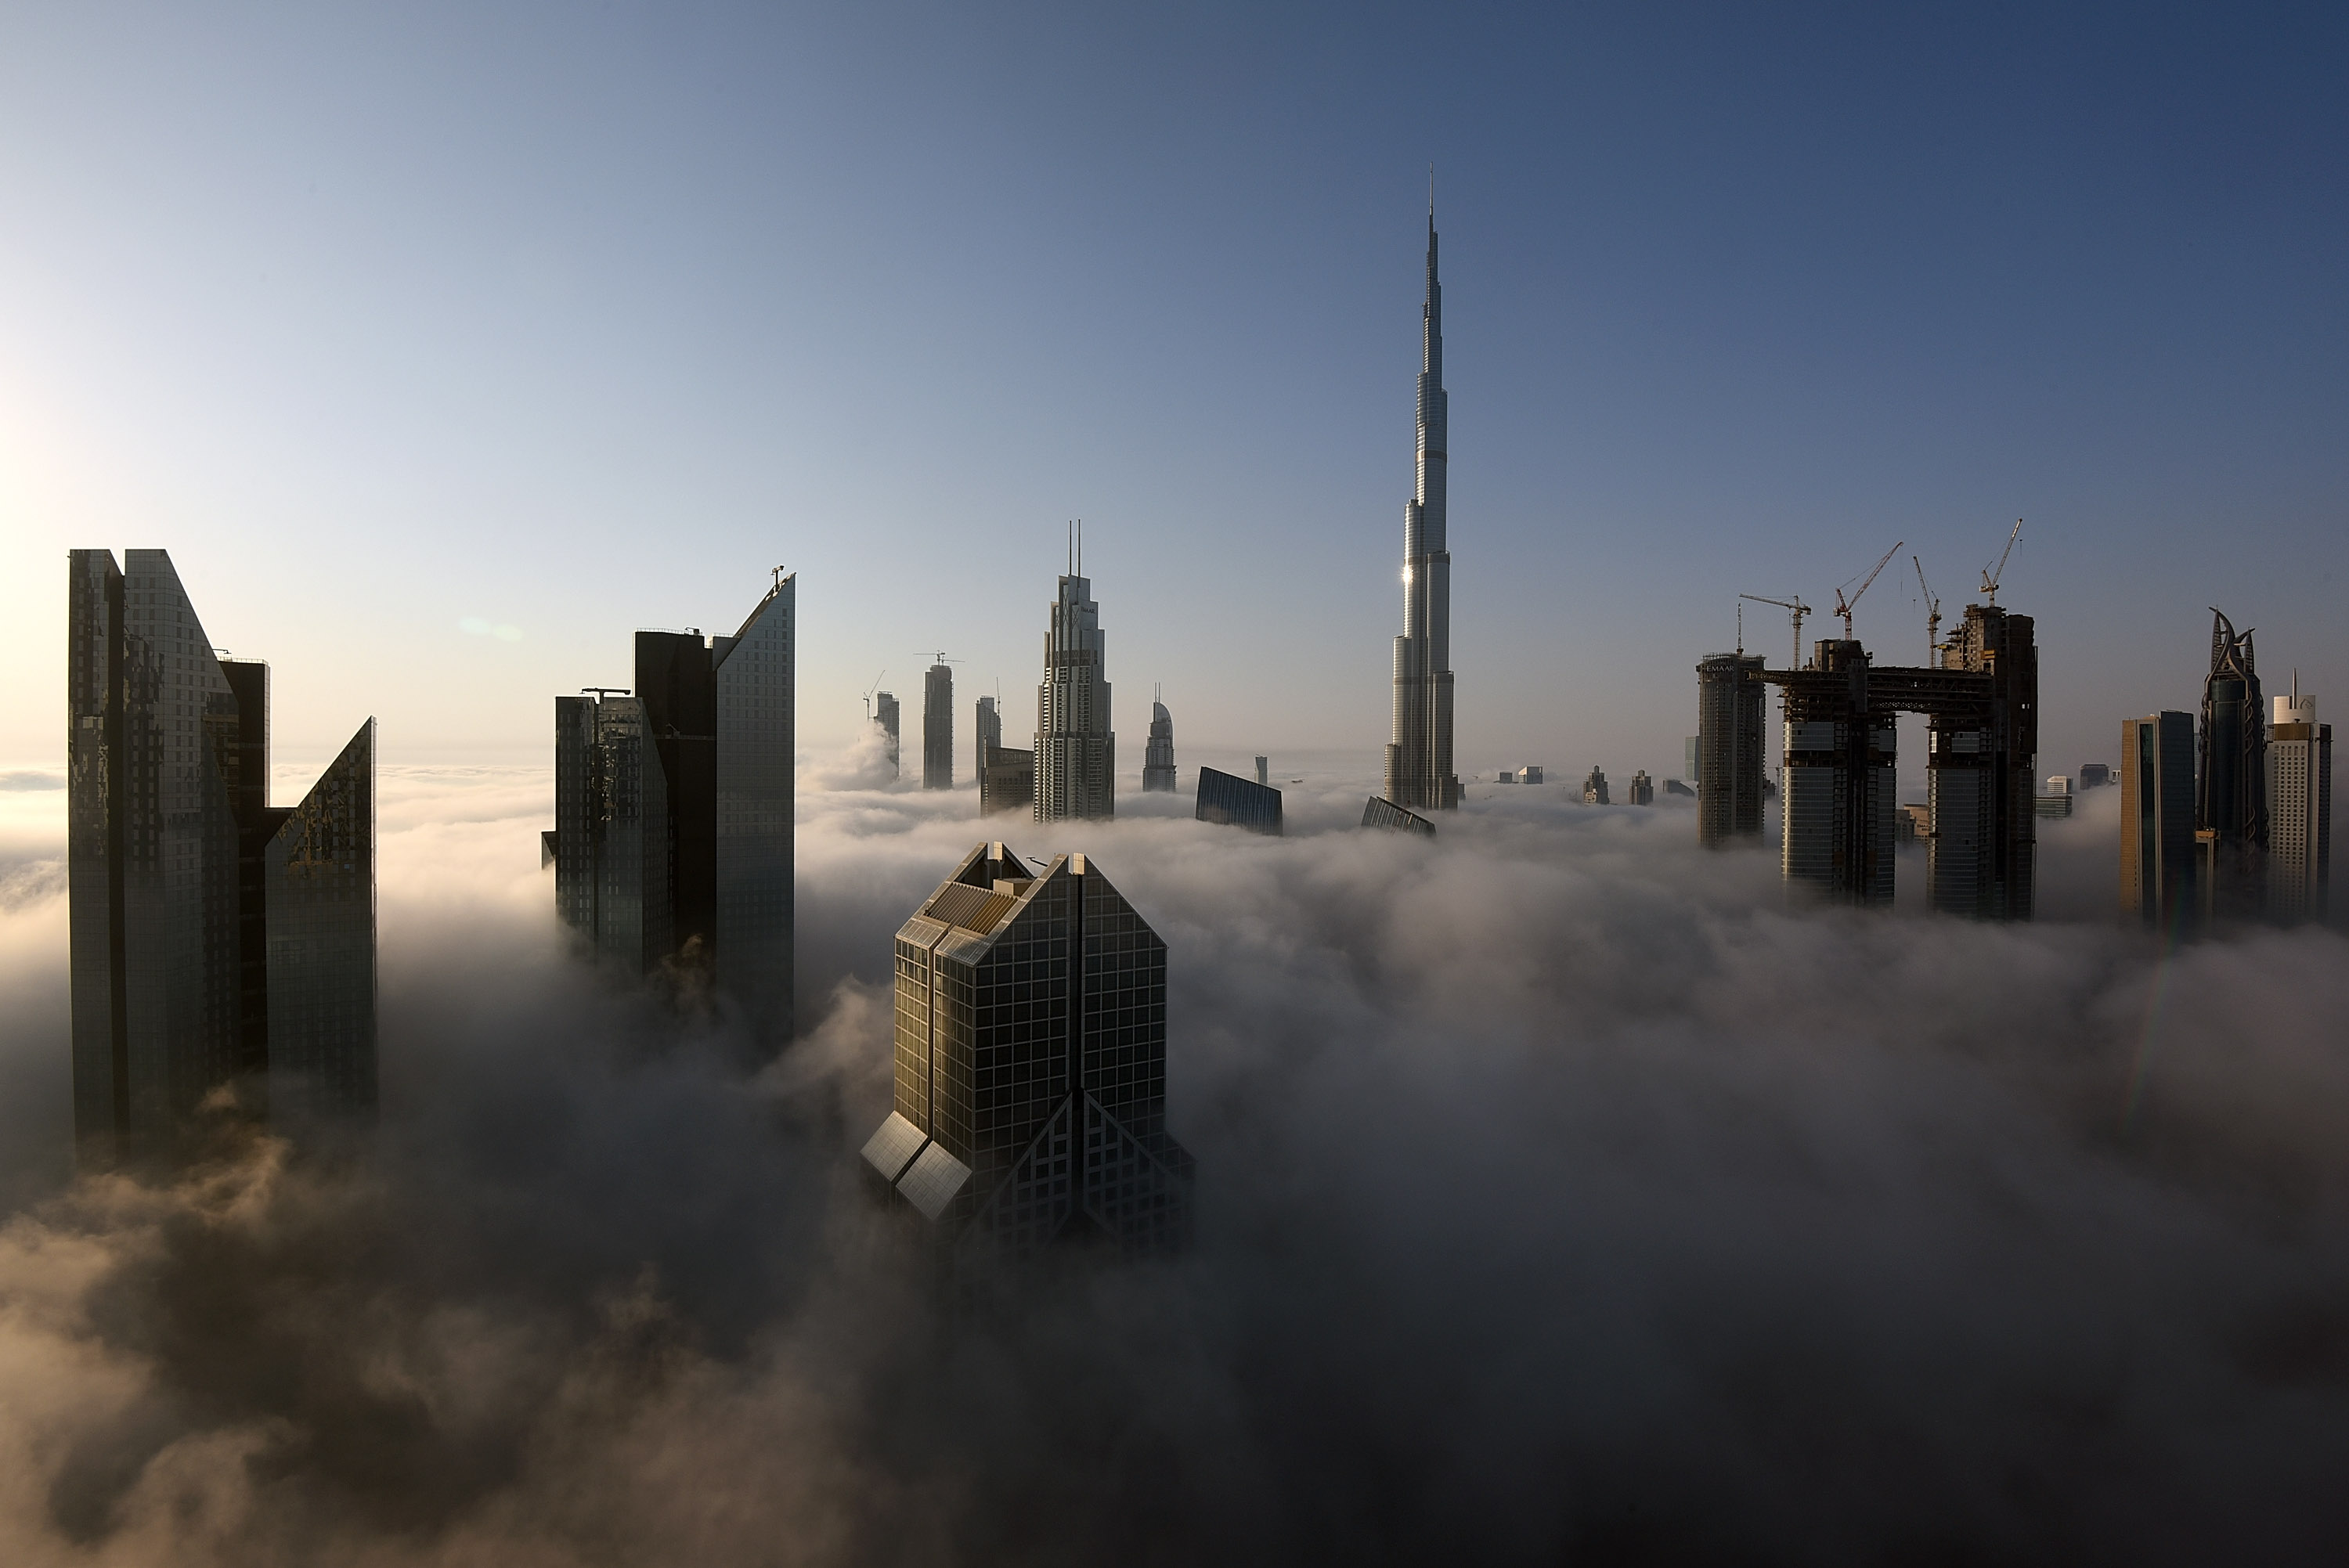 Dubai's Burj Khalifa: A look inside the world's tallest